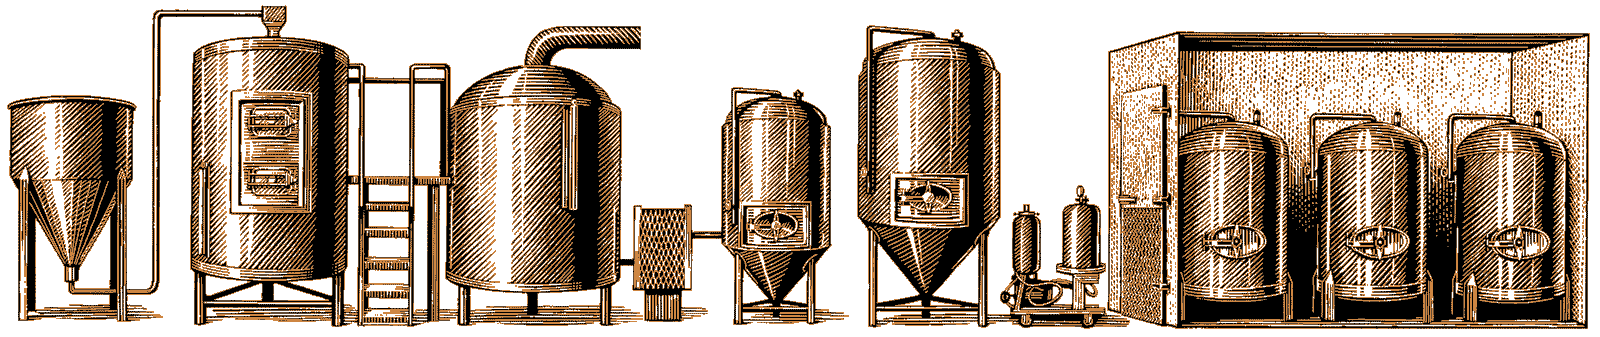 Iron Hill Brewery & Restaurant - Brew Process Graphic